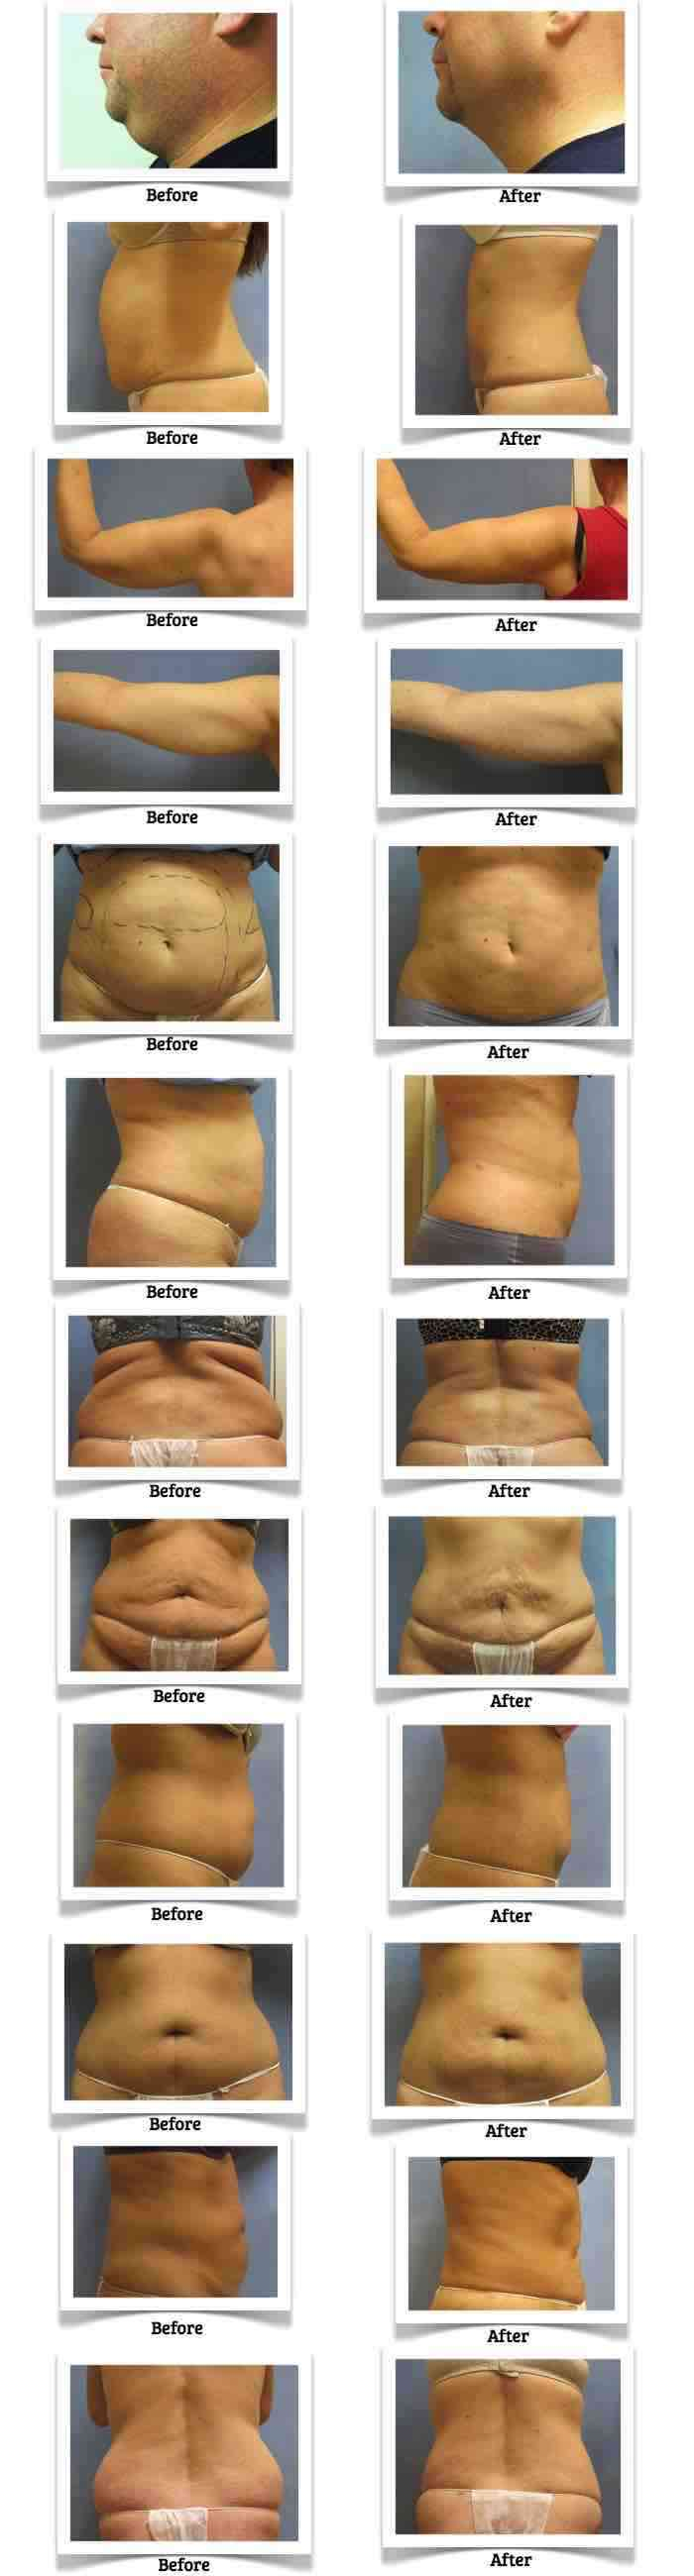 RefineMD before and after photos of clients that received the ProLipo Plus laser lipolysis or ProLipo Plus laser liposuction.